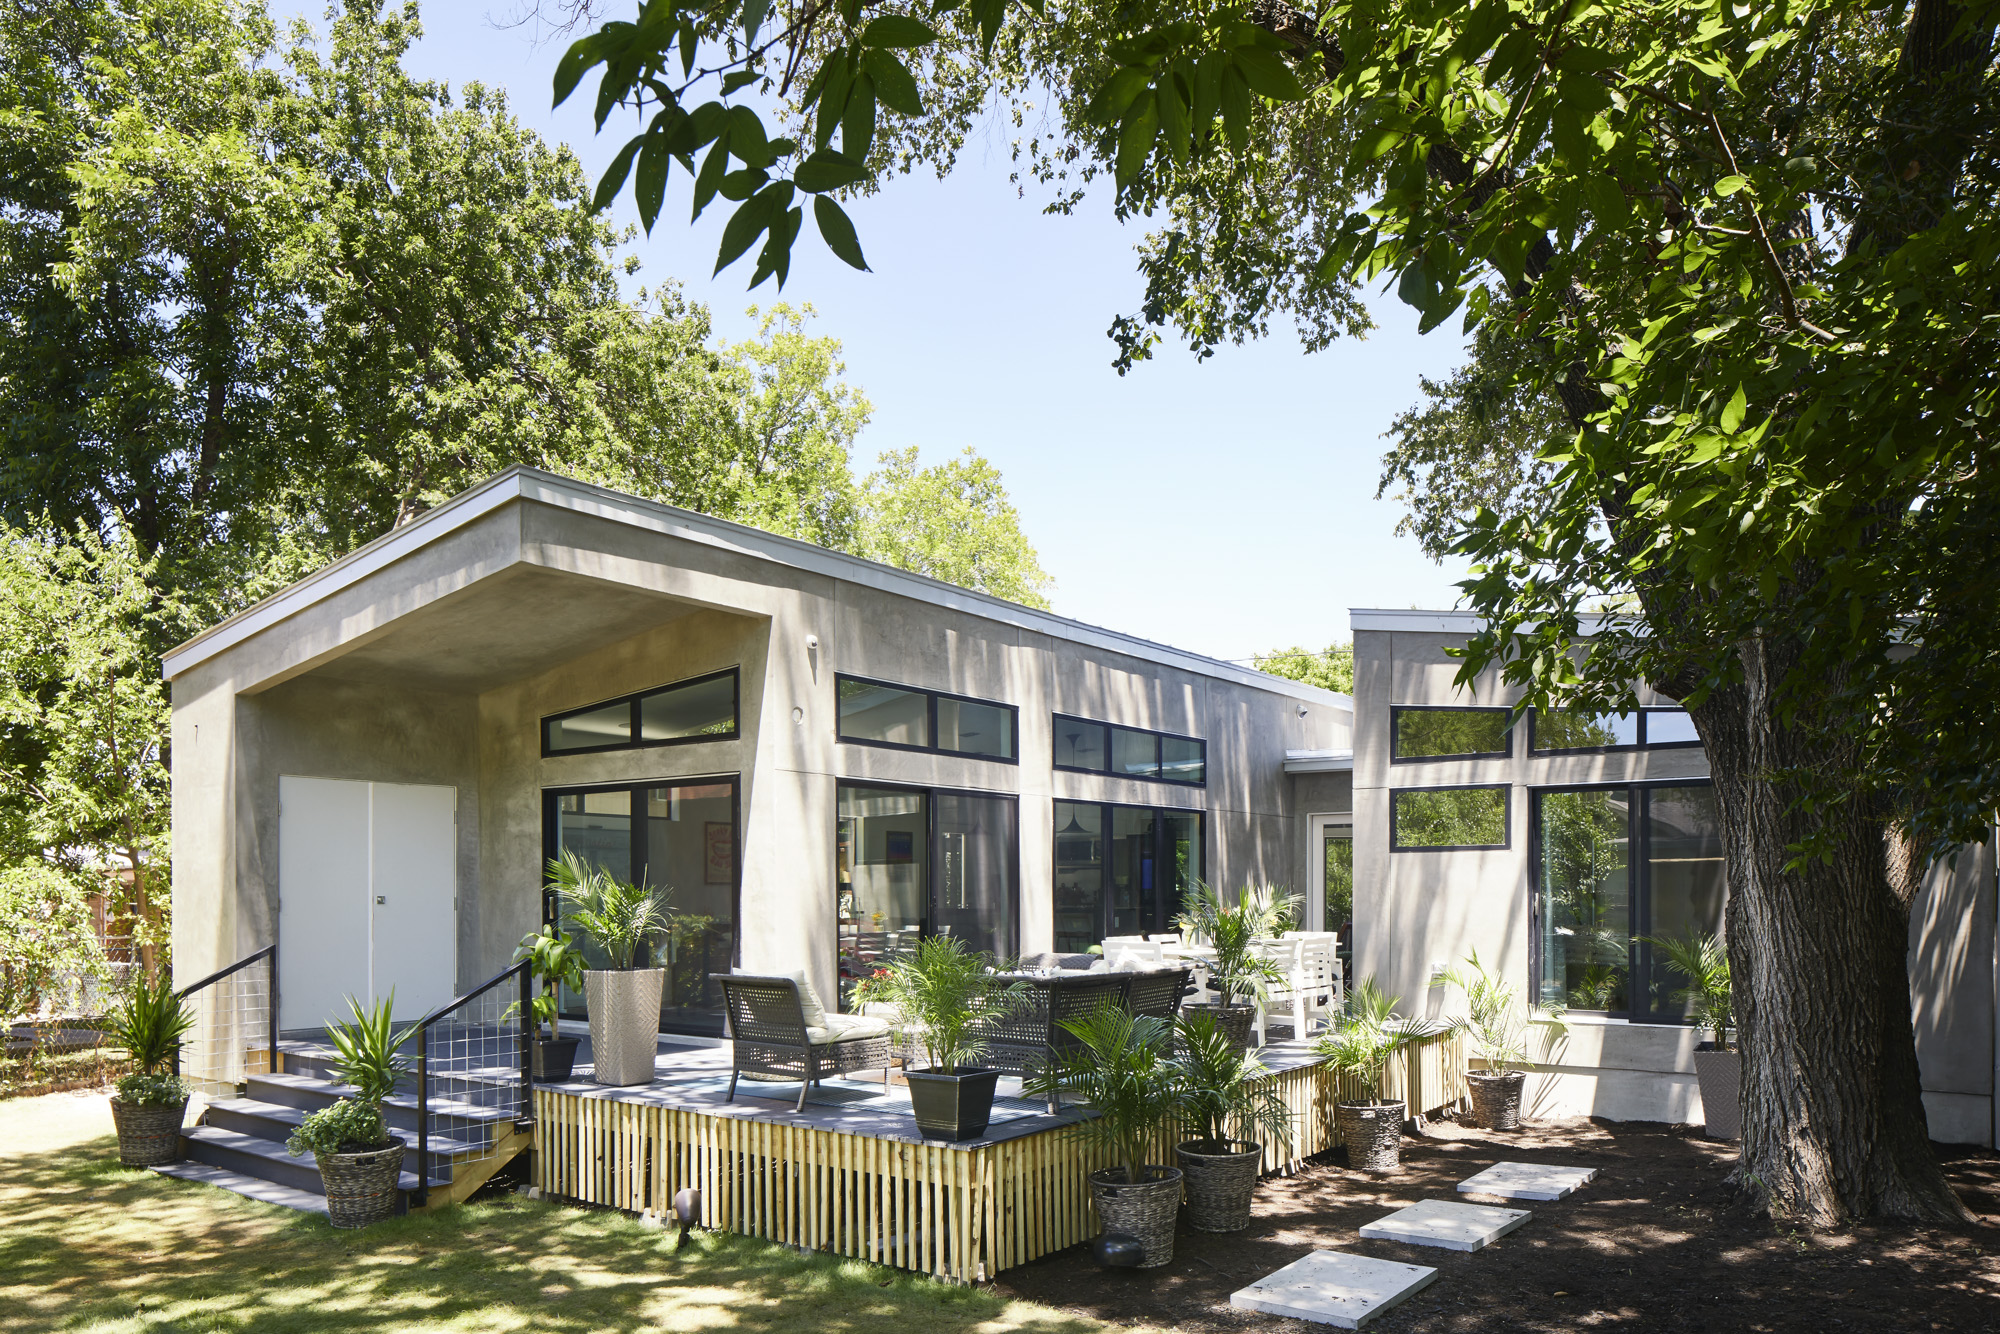 Prefab smart home built from scratch in Texas - Curbed